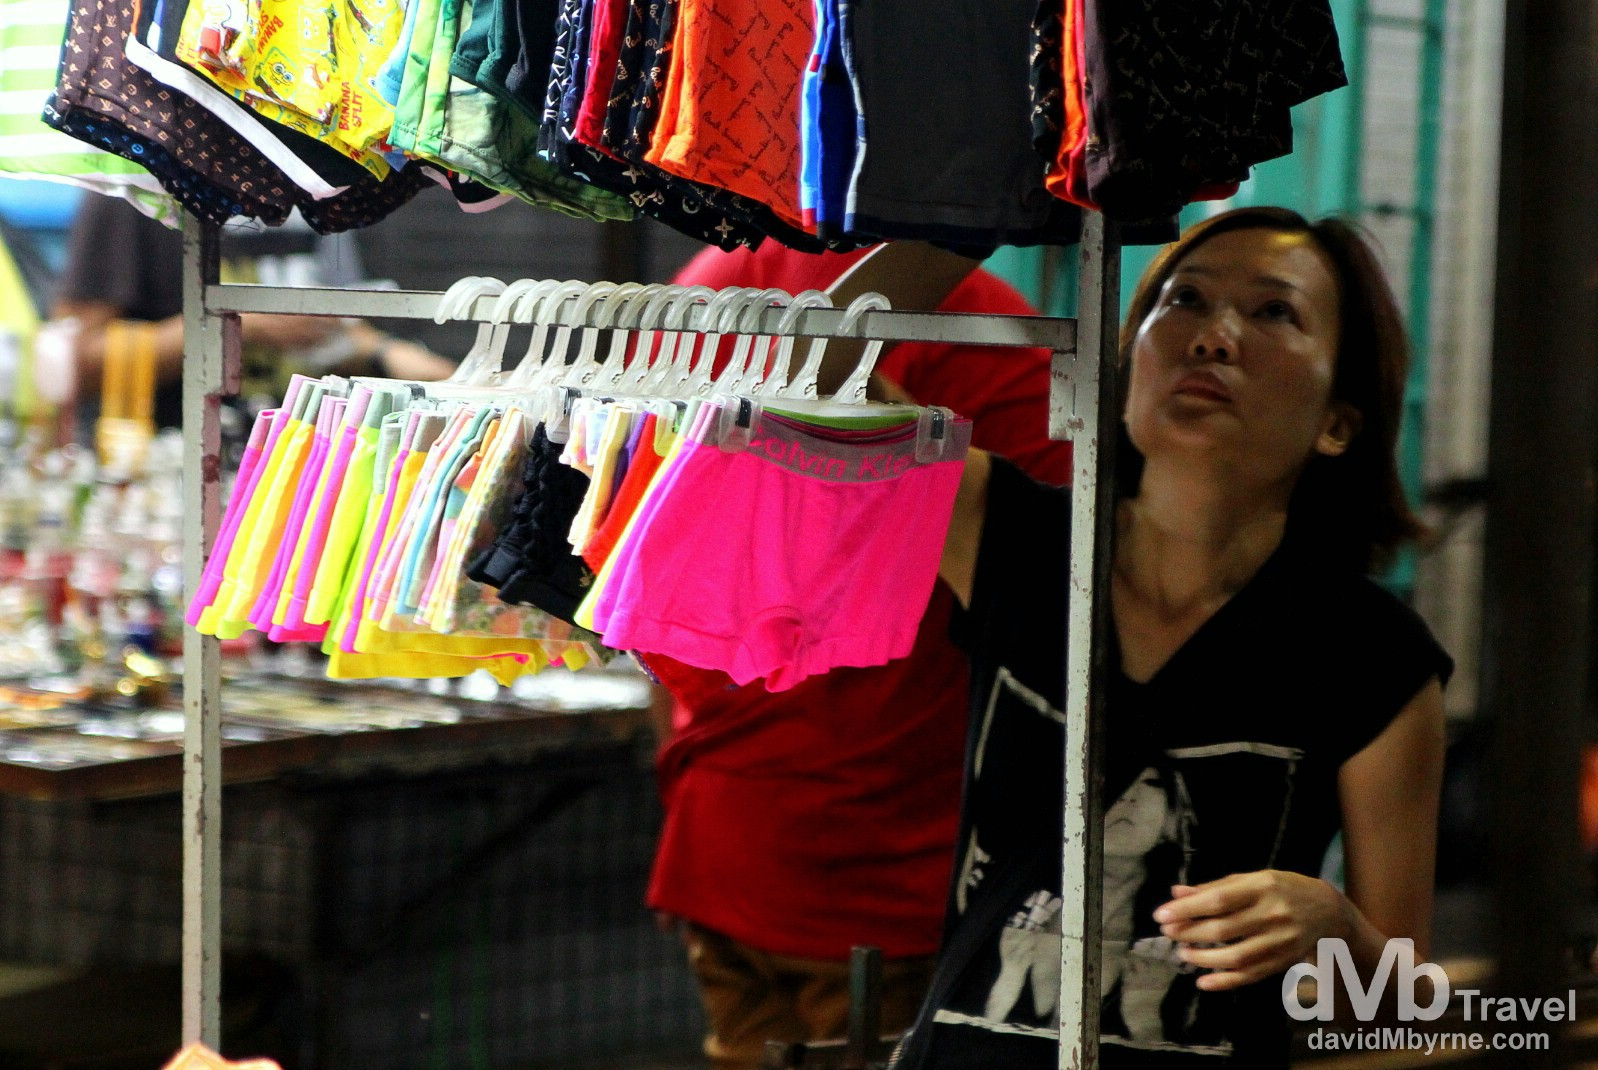 A trader in Petaling Street Market, Kuala Lumpur, Malaysia. March 30th 2012.